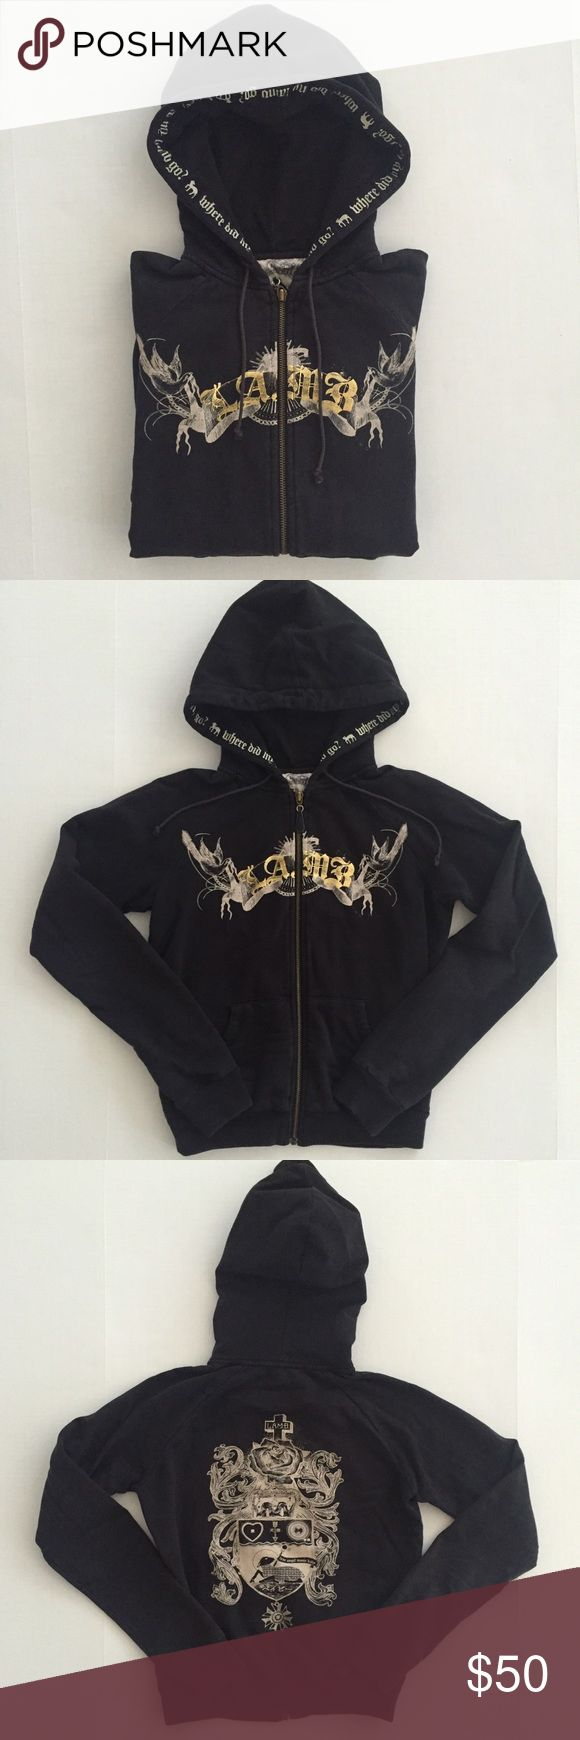 [L.A.M.B] women's zip-up hoodie sweatshirt XS [L.A.M.B] by Gwen Stefani women's zip-up hoodie sweatshirt XS •🆕listing •good pre-owned condition •black with gold/cream logo screen on front and back, intended distressed look •front hand pocket •material 80% cotton 20% polyester, fleece interior •Offers welcomed using the offer feature or bundle/bundle offer for the best discount• L.A.M.B. Tops Sweatshirts & Hoodies